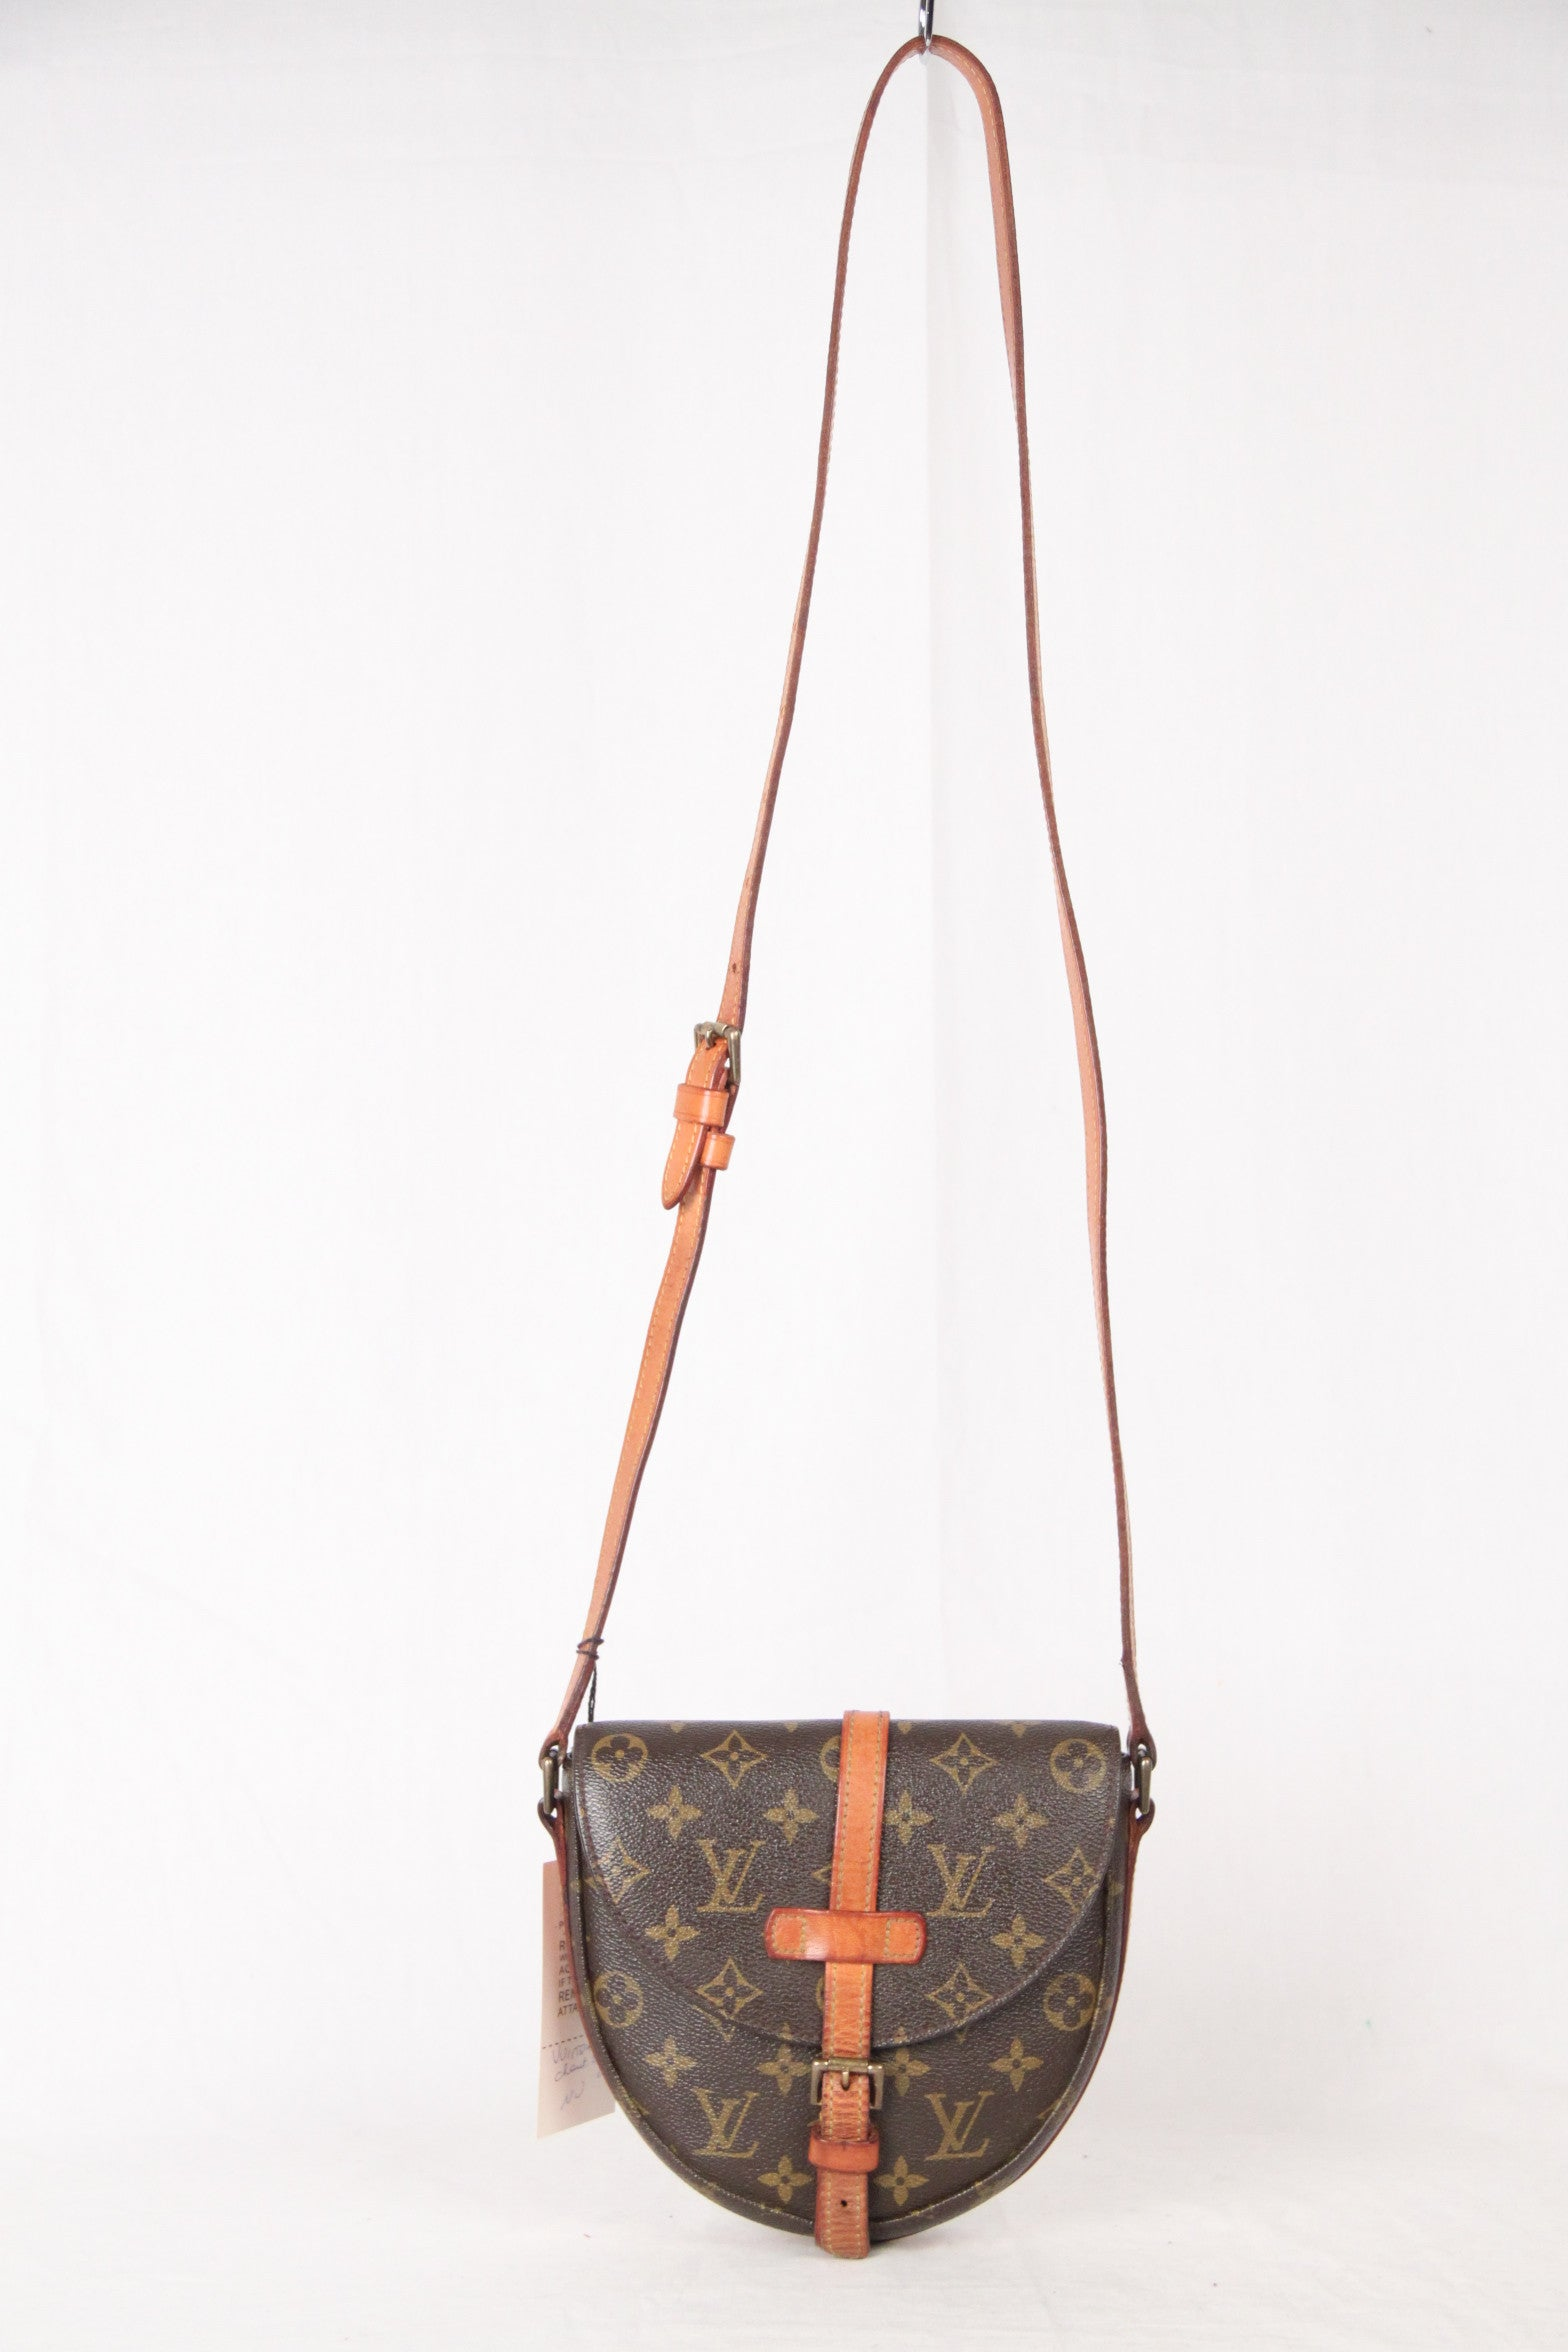 7218f0b65bdf LOUIS VUITTON Vintage Monogram Canvas CHANTILLY PM Messenger Bag For Sale  at 1stdibs